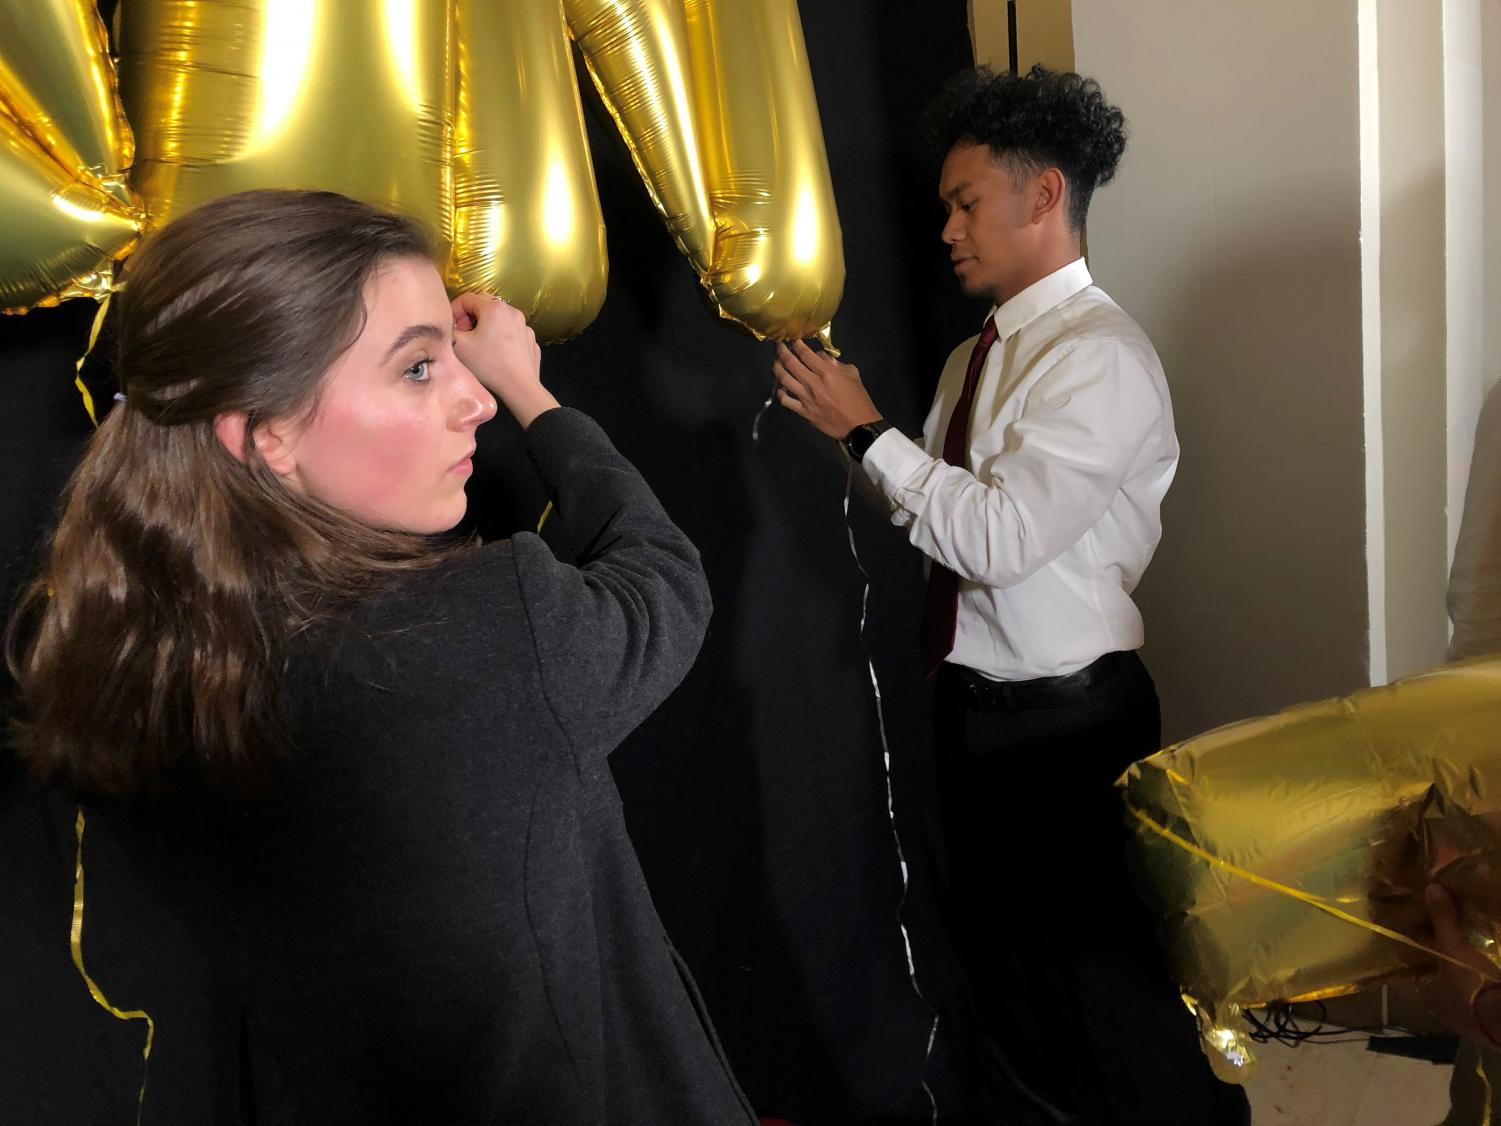 Seniors Wellsley Cohen and Skyler Dela Cruz decorate the Flood Mansion's Gallery for Winter Formal on Jan. 25. The gambling-themed annual dance featured snacks, drinks, card games and a dance floor in the Reception Room.